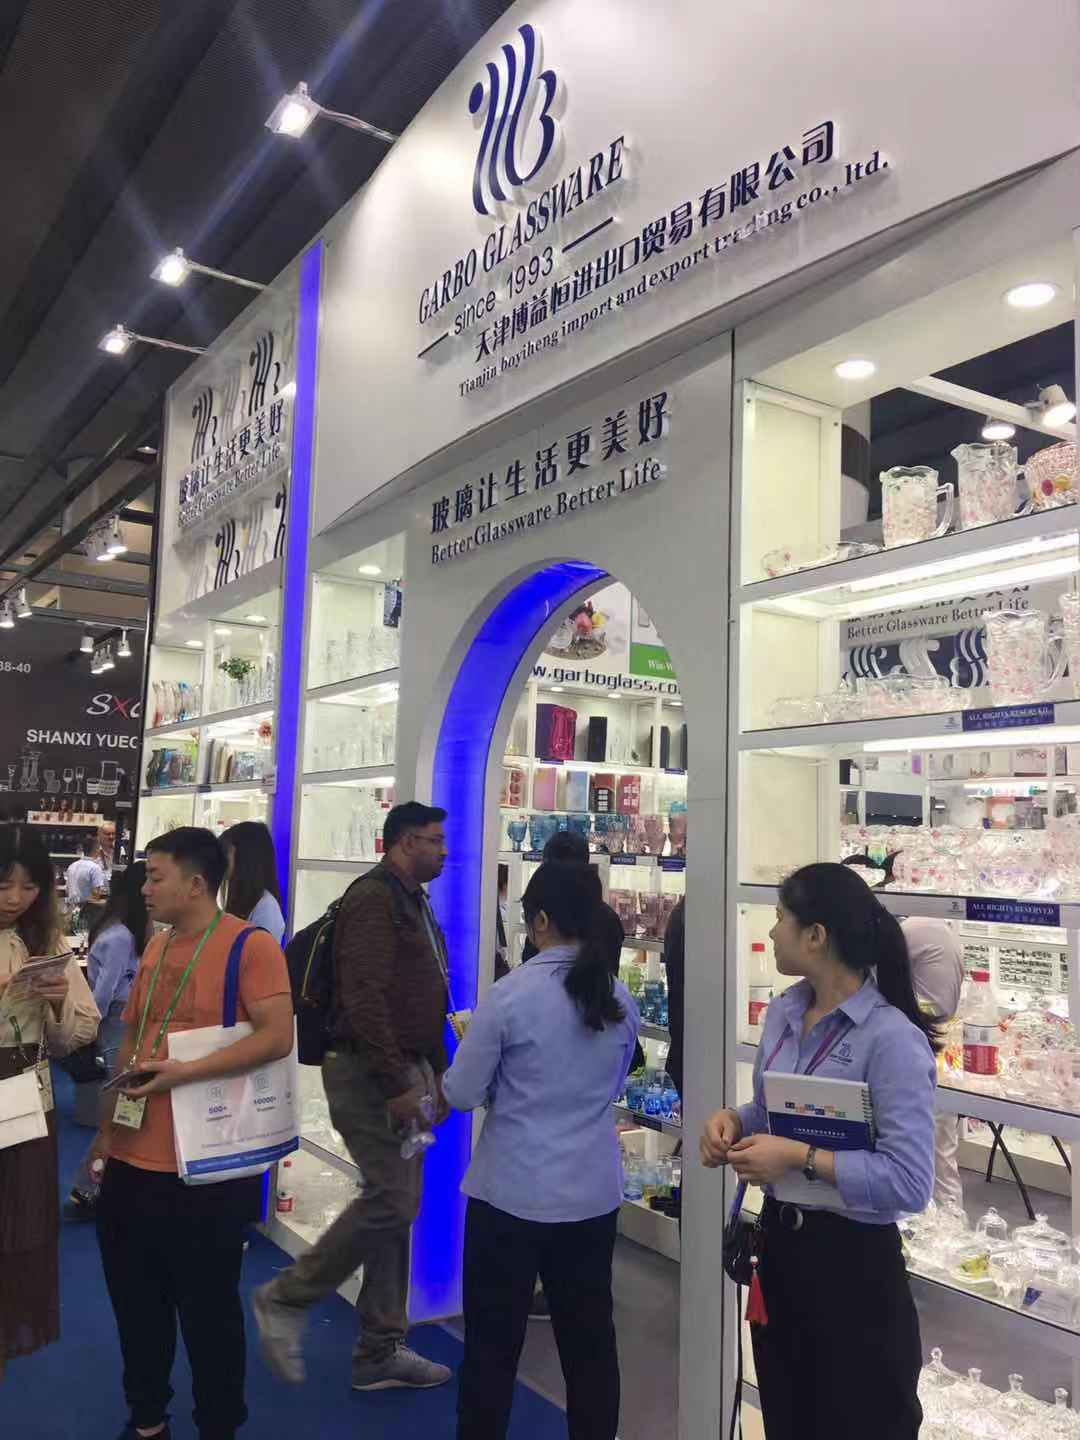 The first day of 126th canton fair